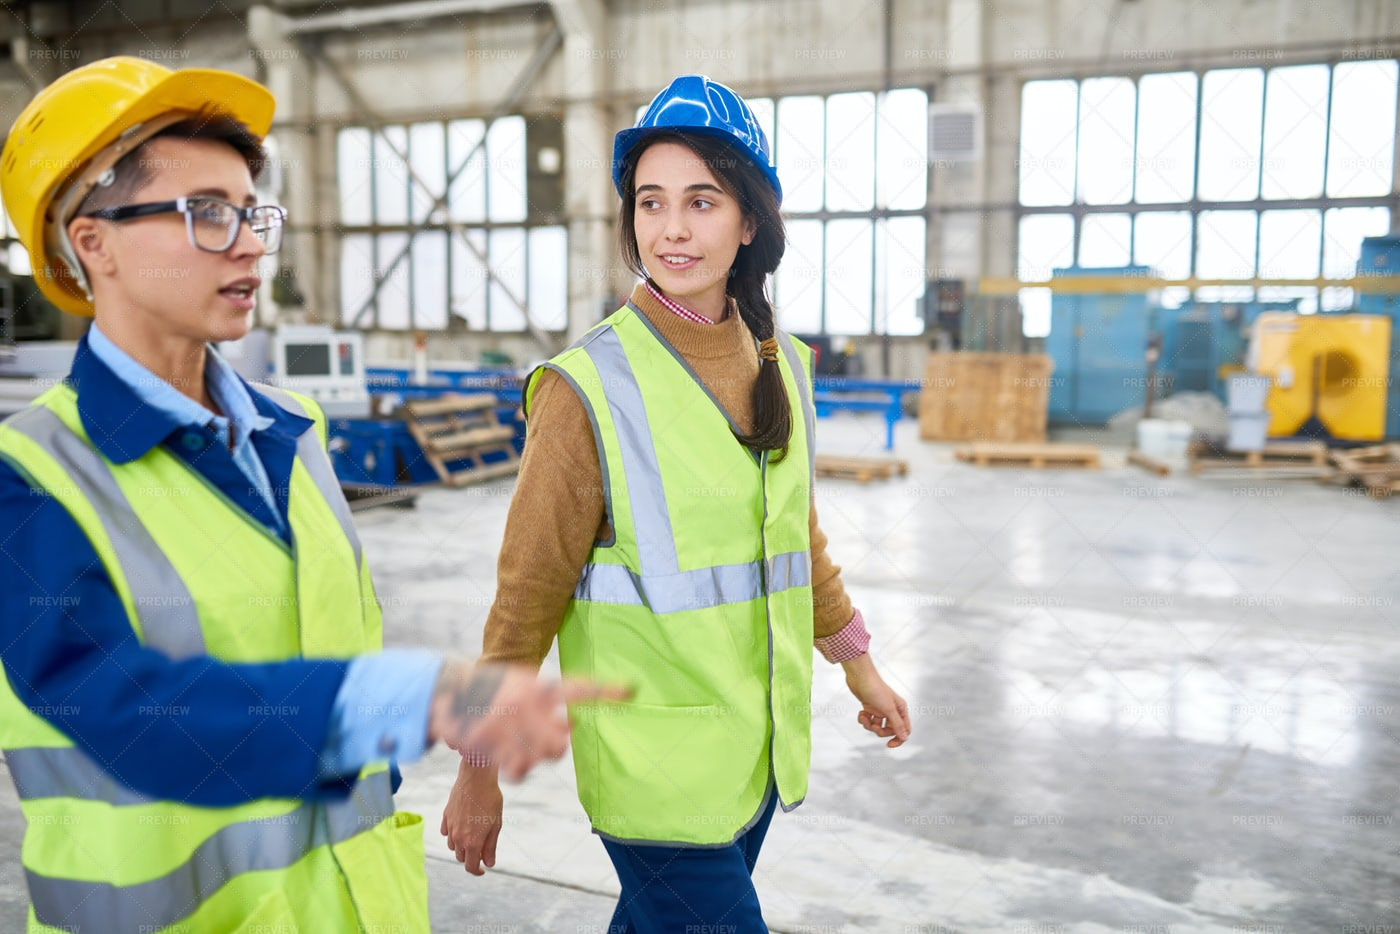 Forewoman Showing Construction Site...: Stock Photos